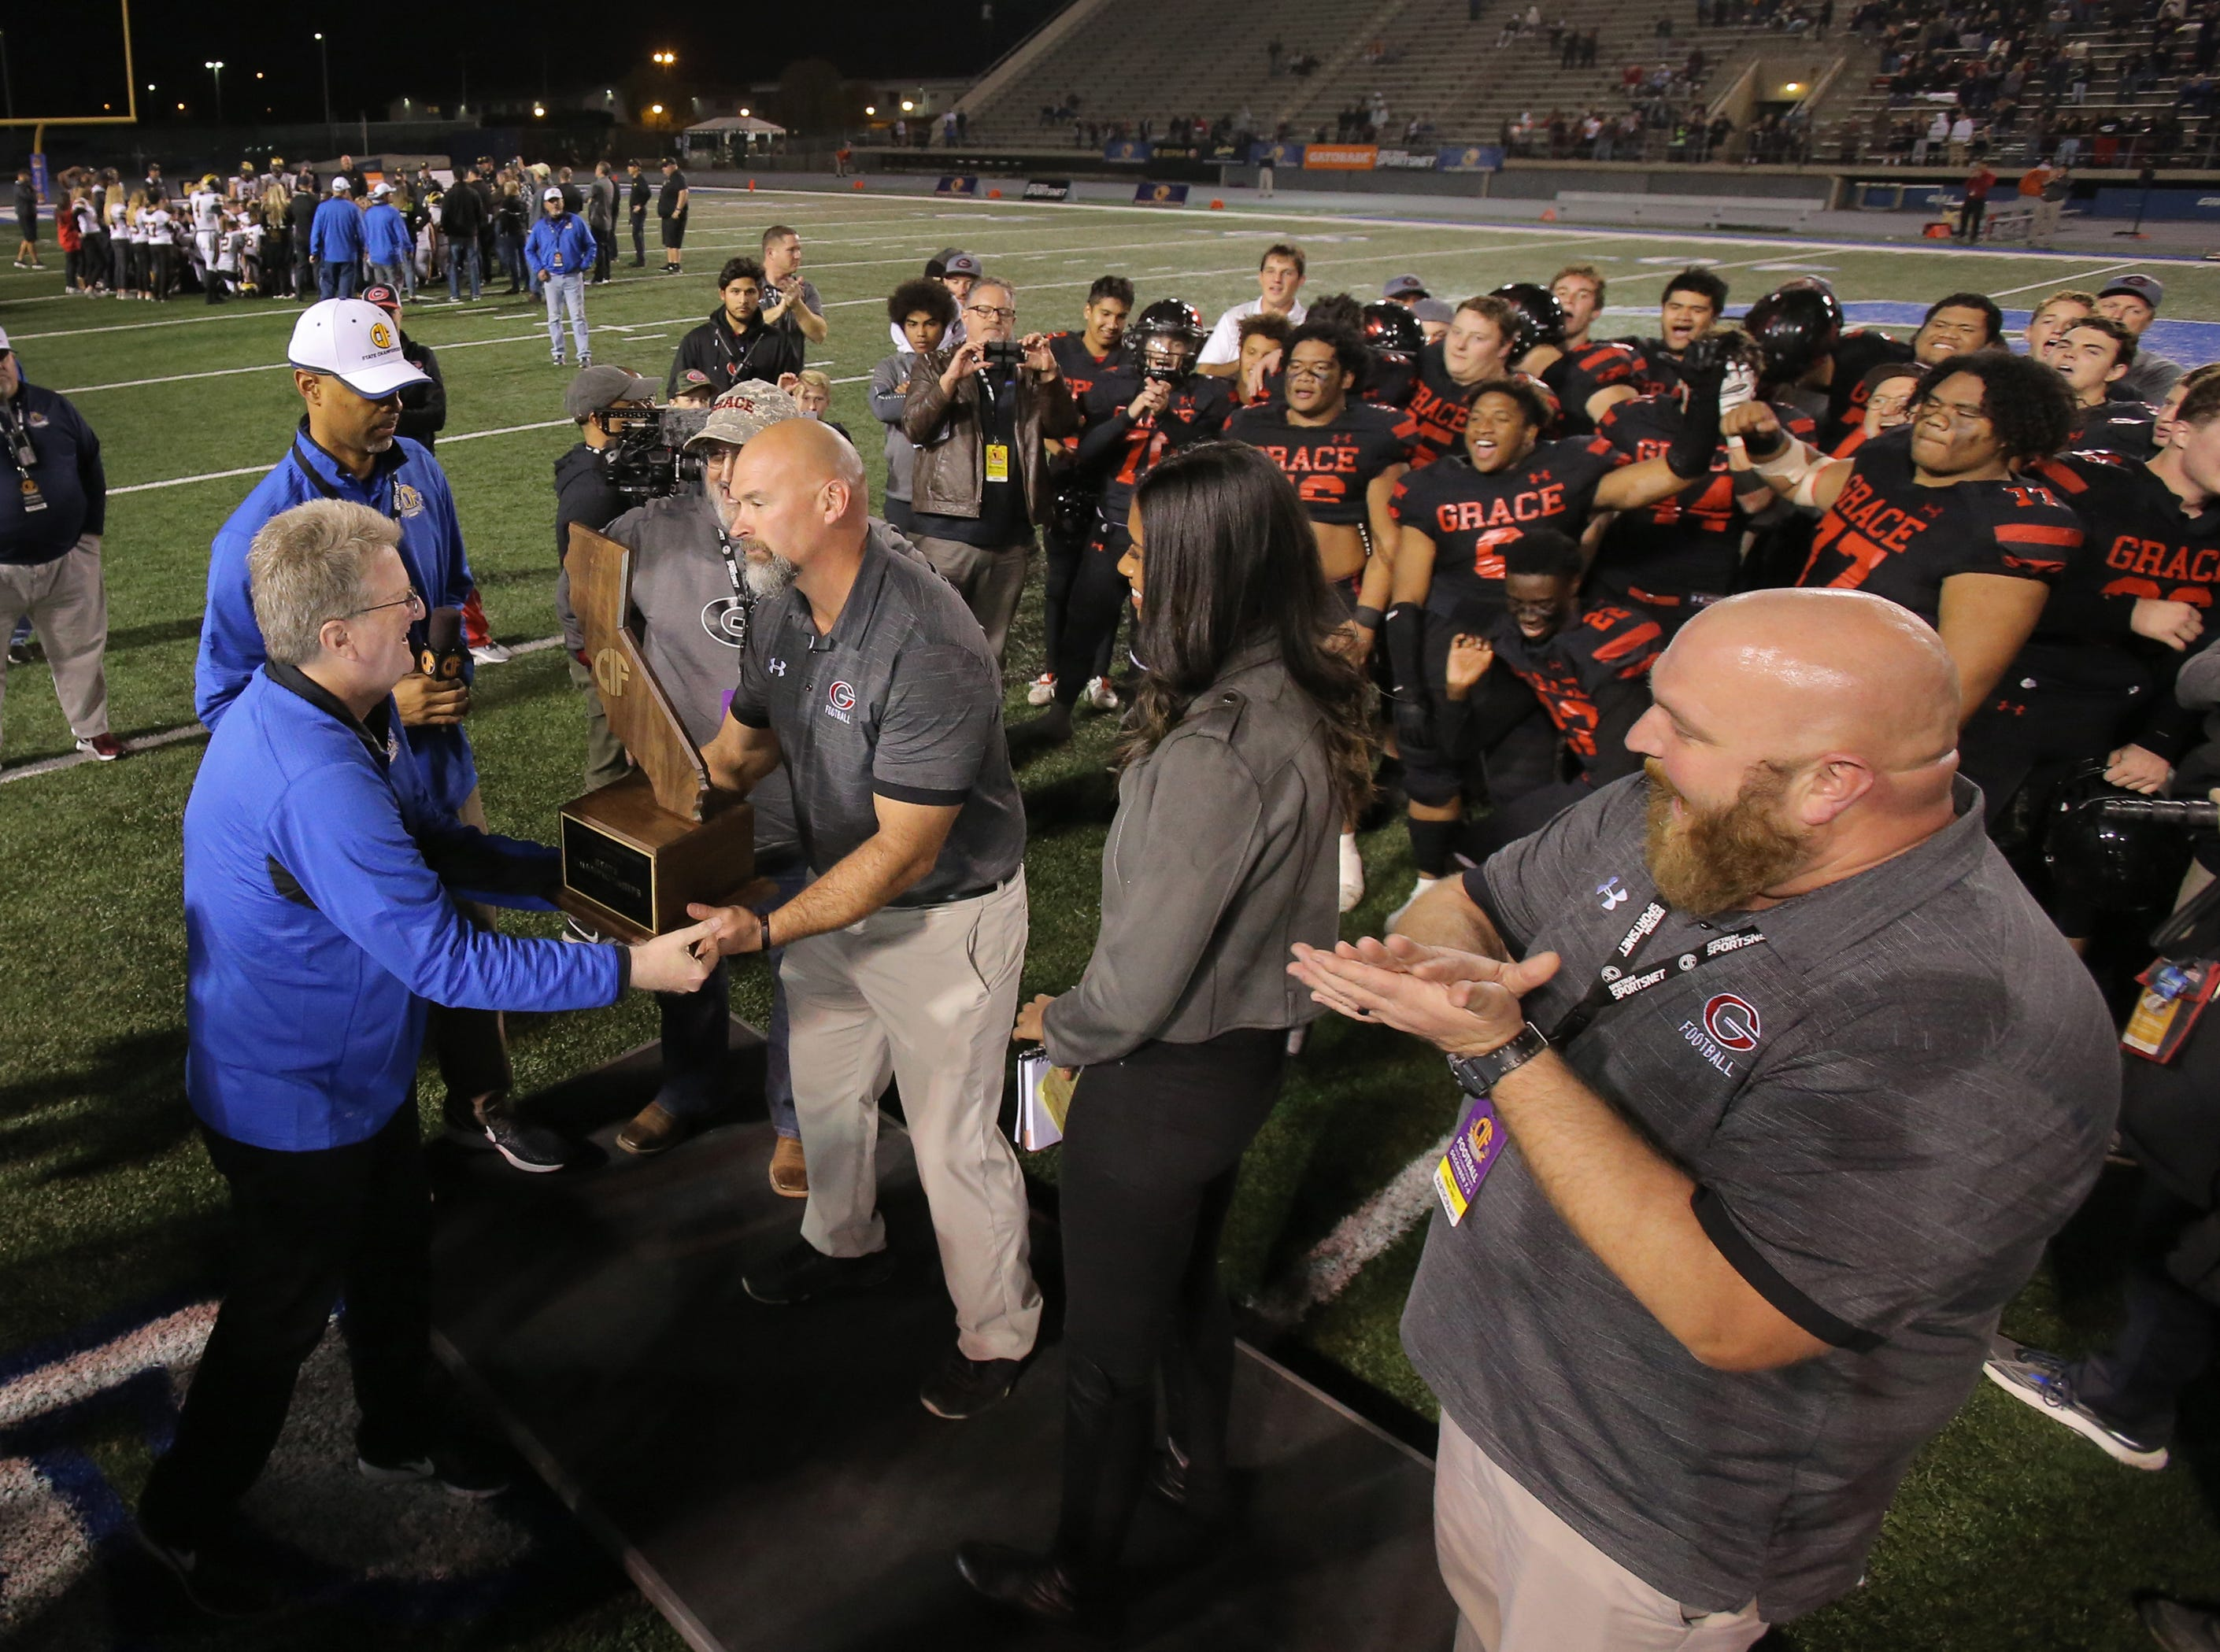 Grace Brethren head coach Josh Henderson receives the state championship trophy after his team defeated Del Oro 21-14 for the Division 2AA title Friday at Cerritos College.